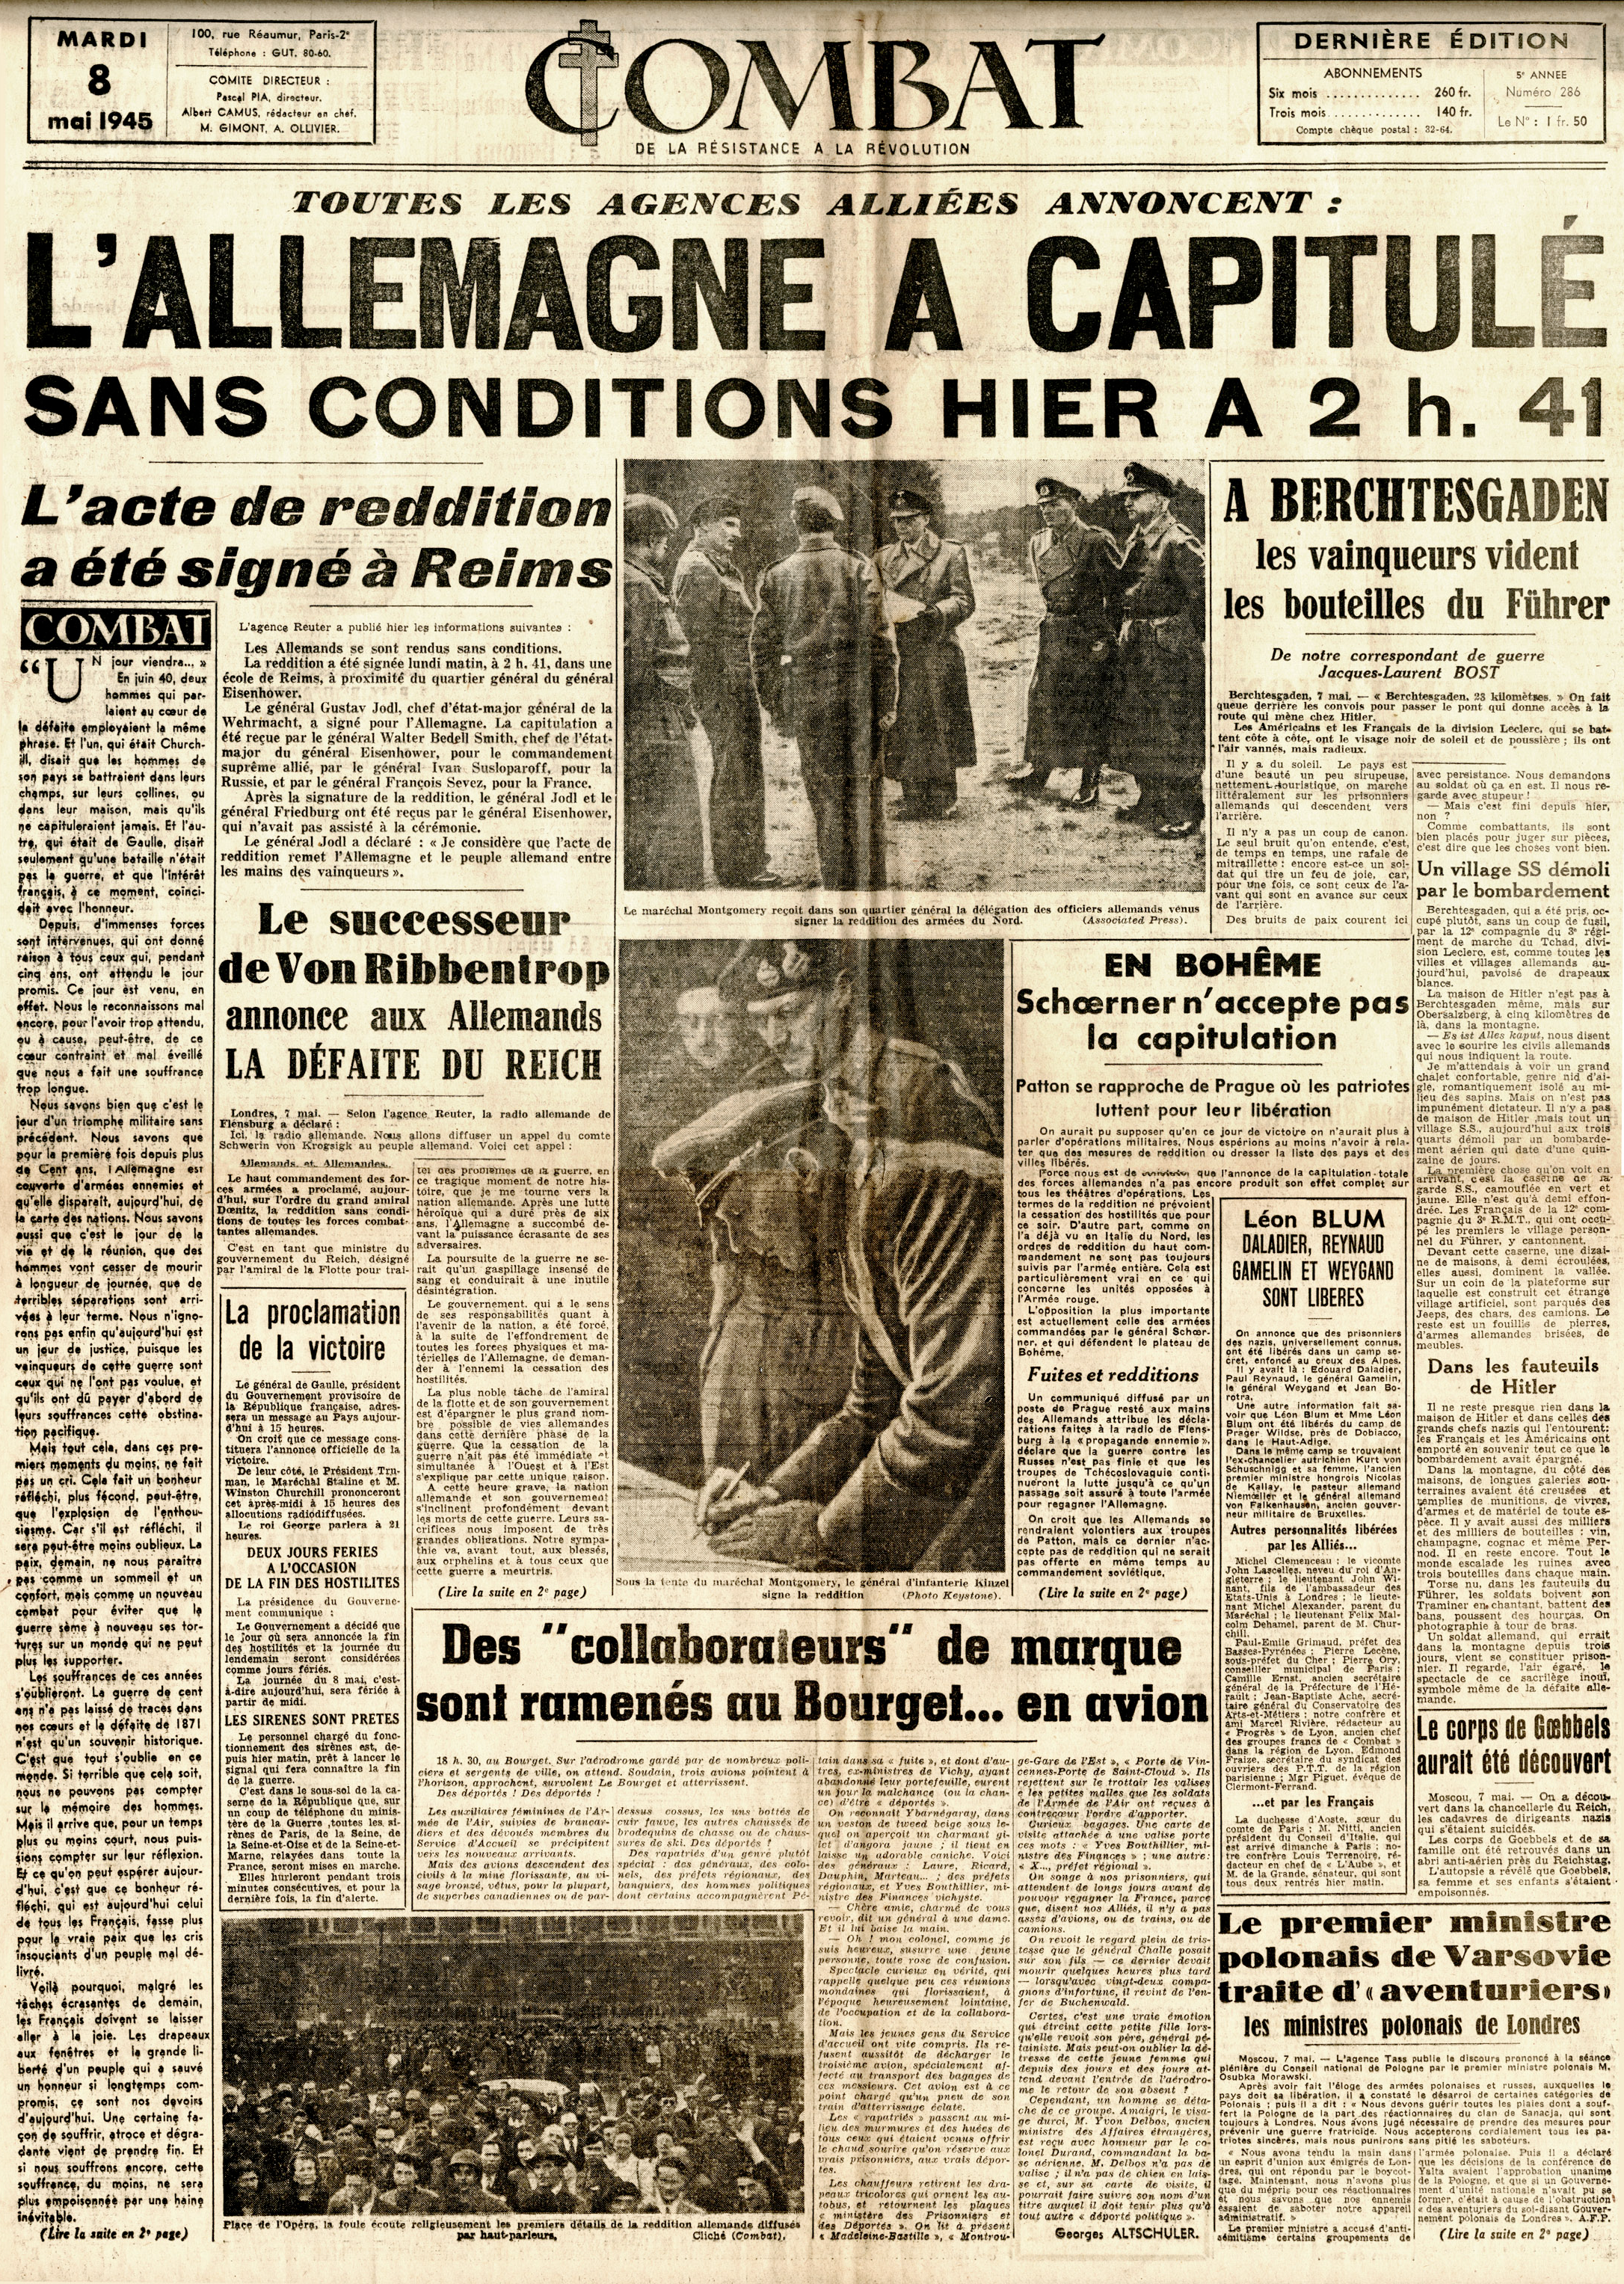 Combat  May 8th, 1945. The headline announces the surrender of Germany. (Author's collection)